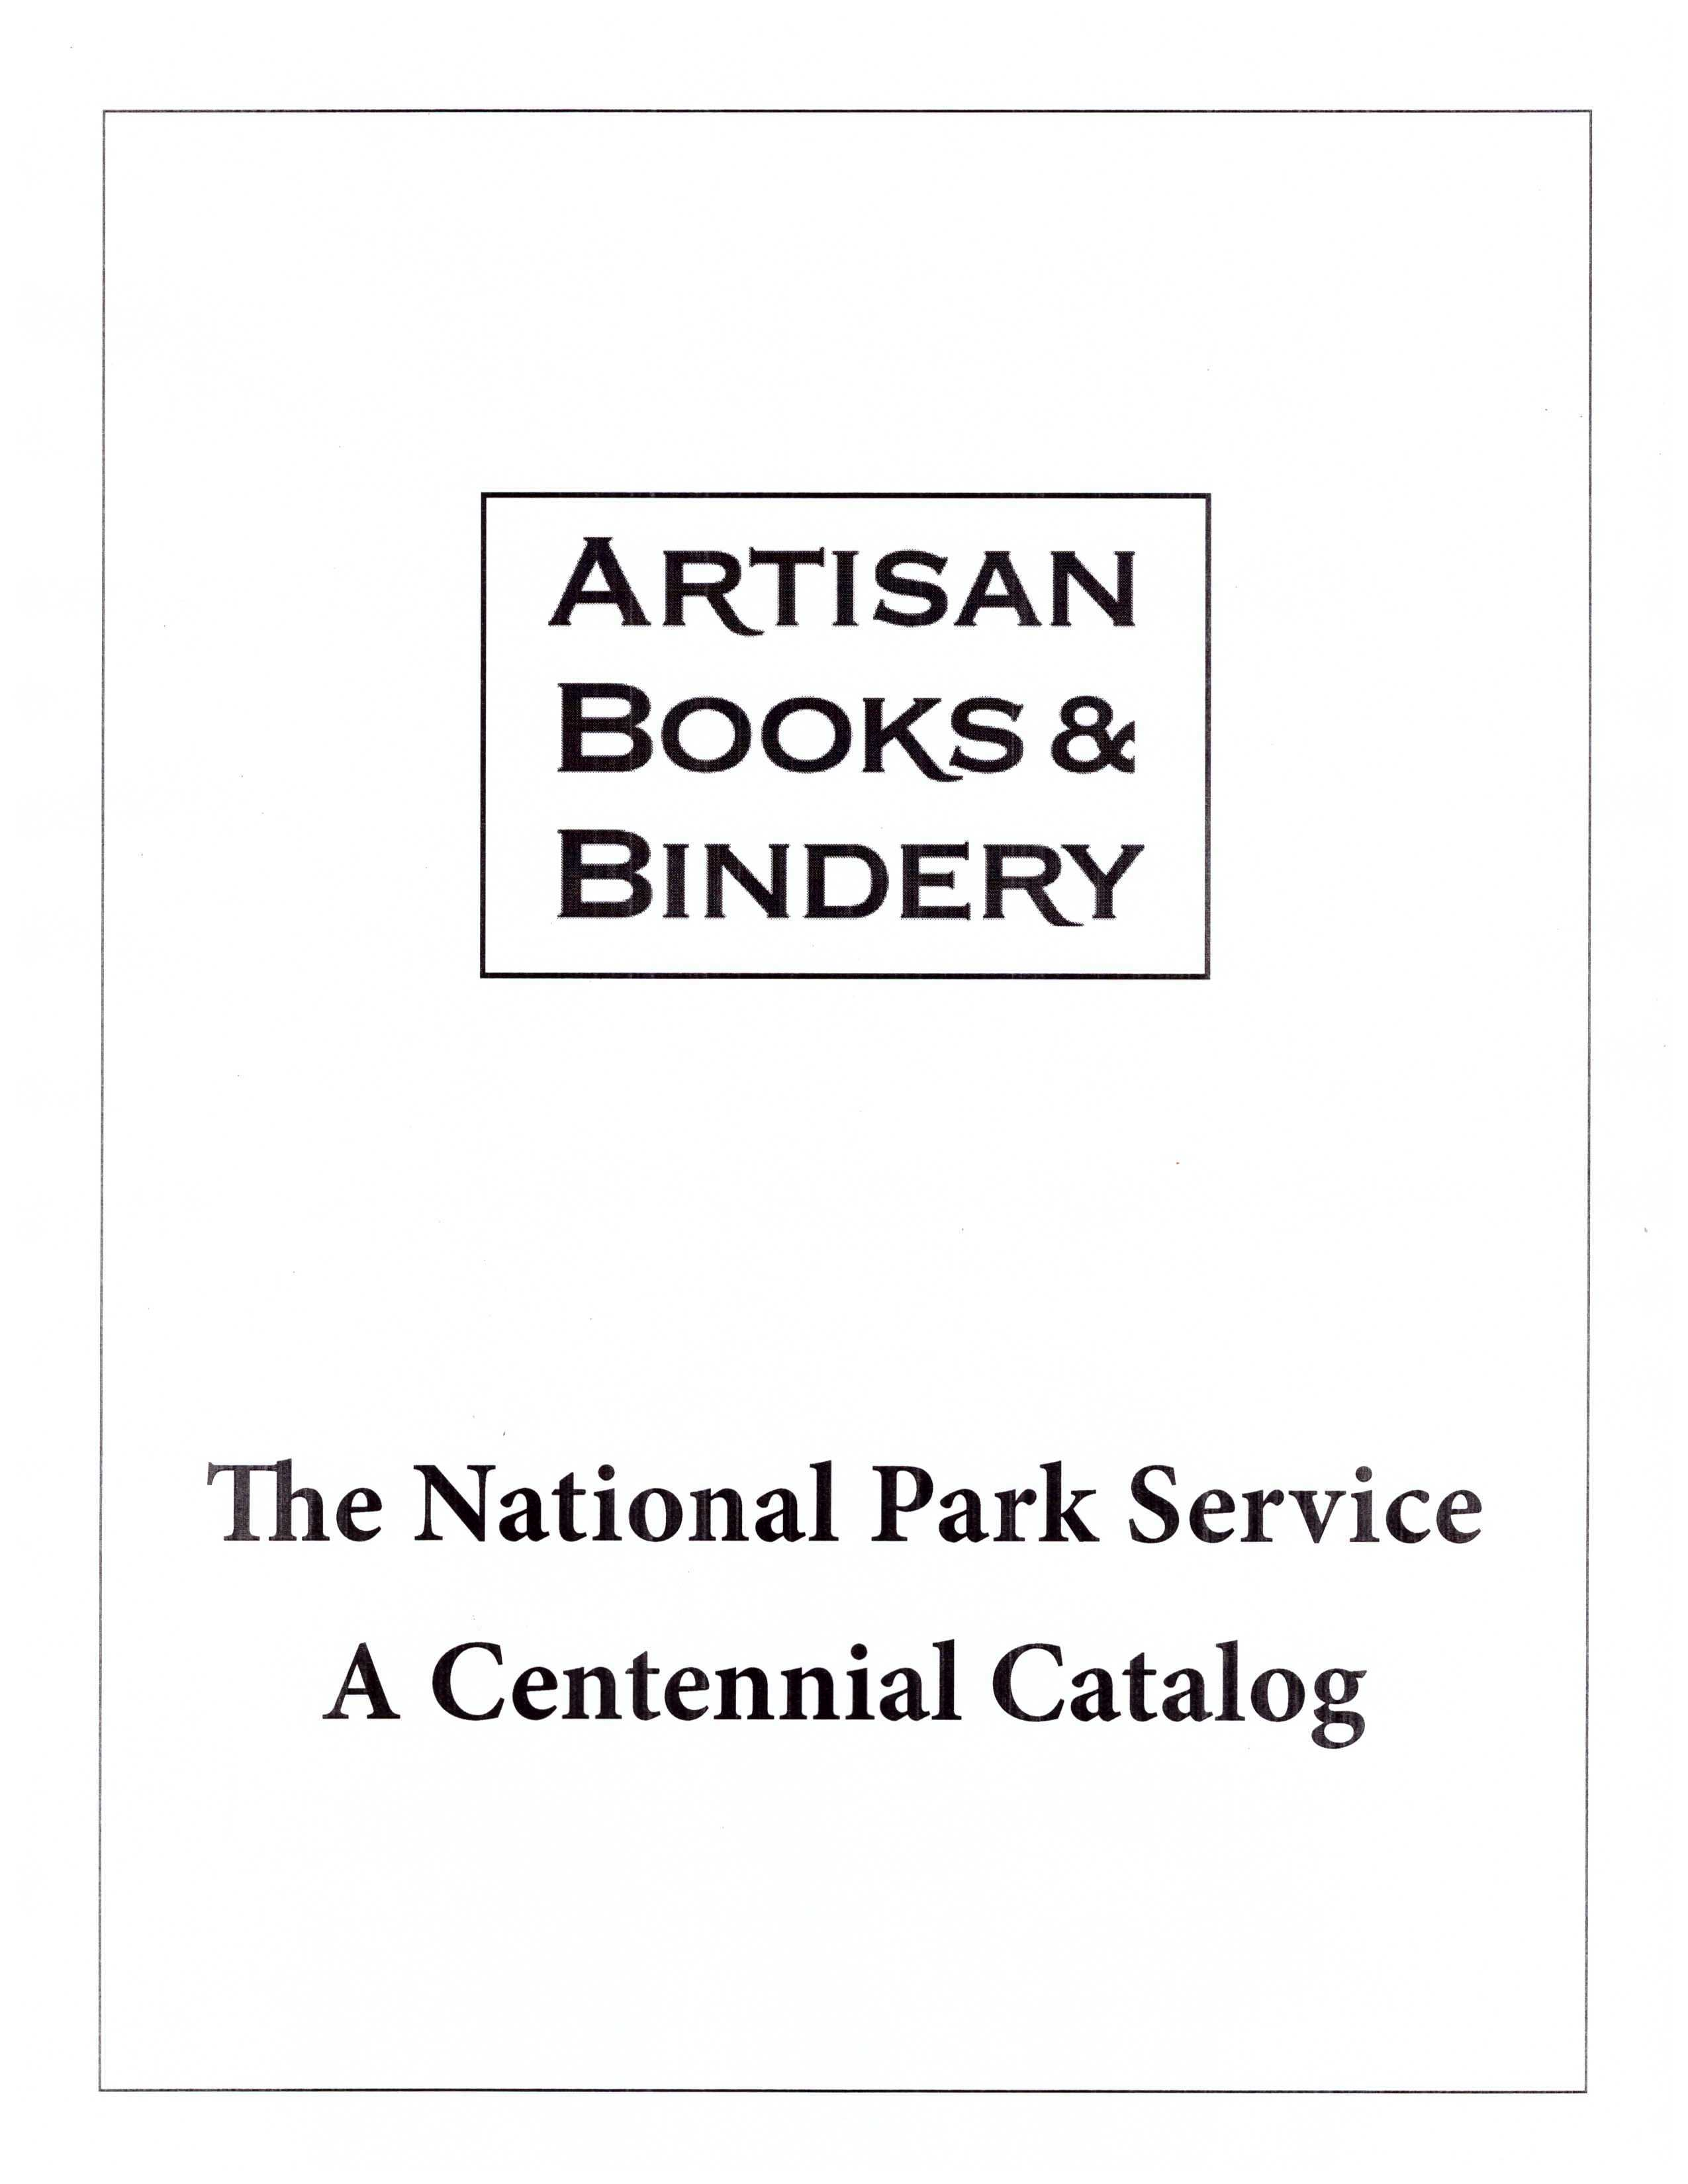 The National Park Service: A Centennial Catalog